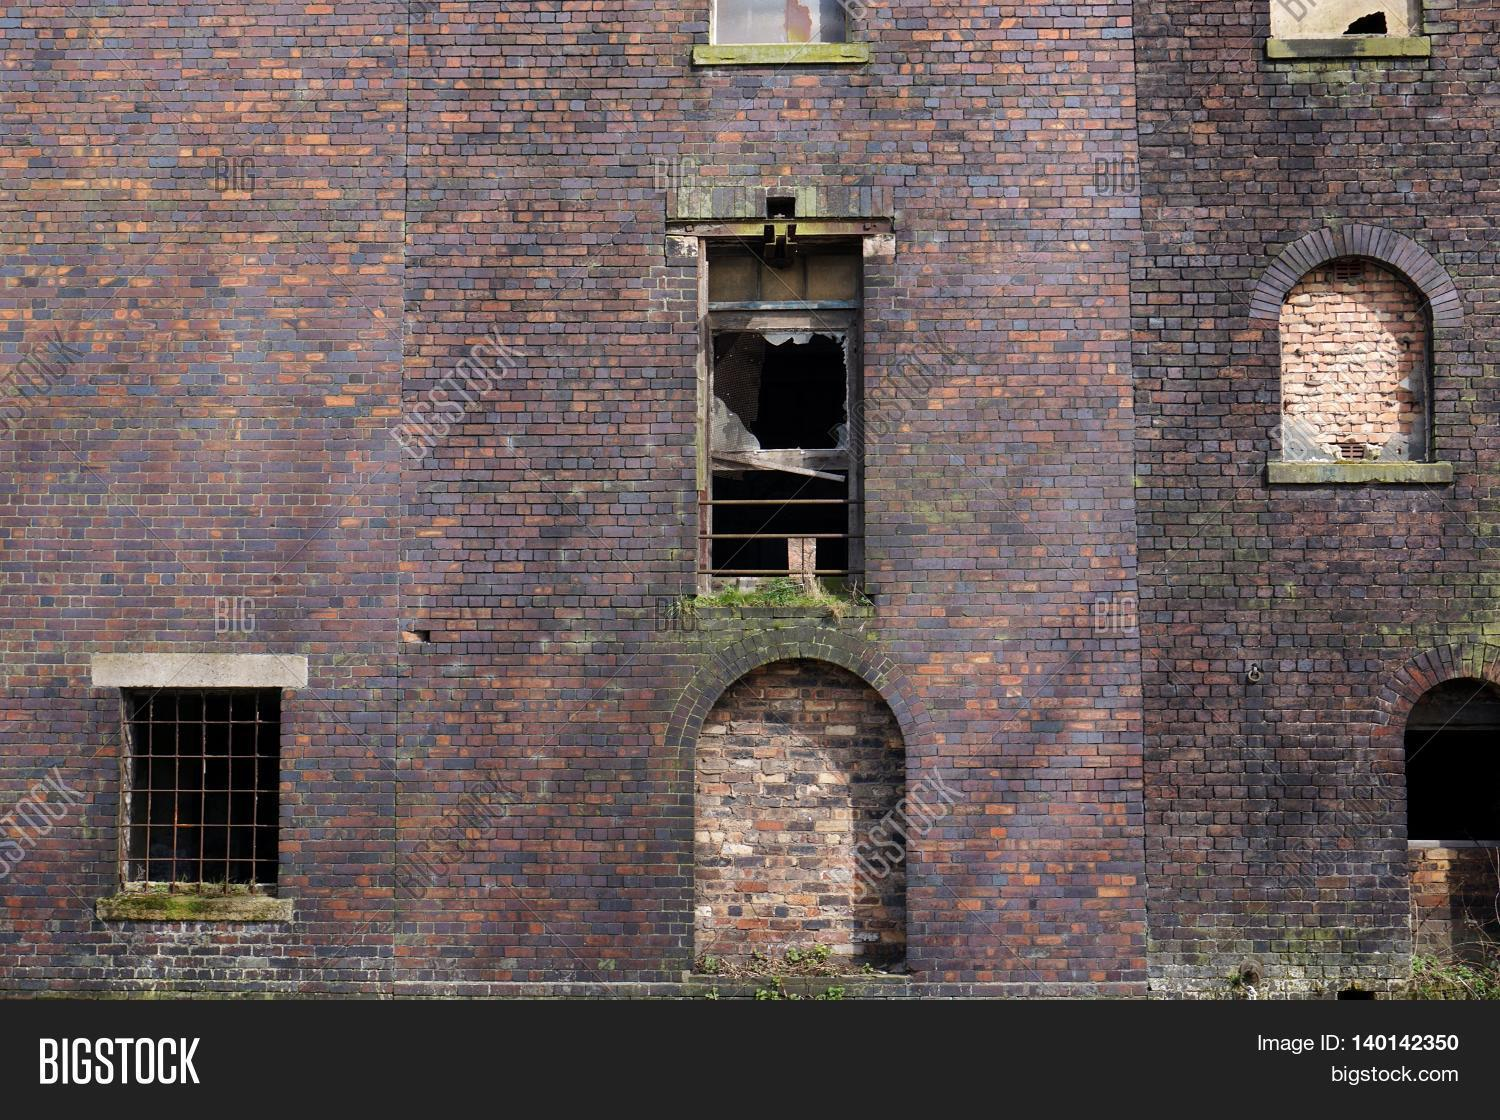 Side View Of An Abandoned Red Brick Warehouse Or Factory Building With Boarded Up And Broken